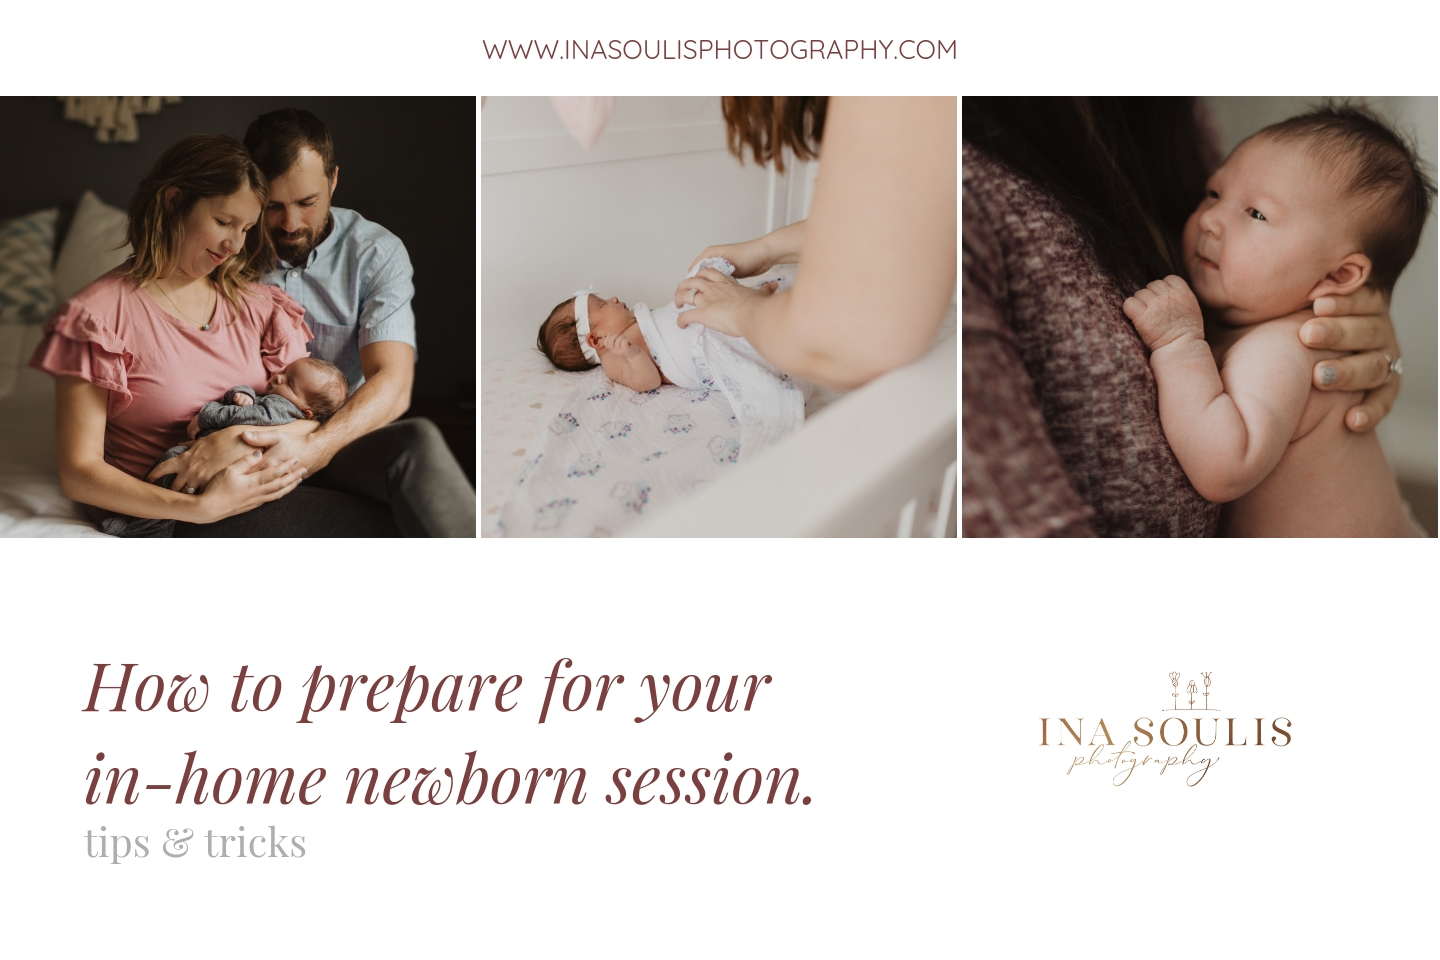 three cute newborn babies in a collage for an In home lifestyle newborn session preparation guide